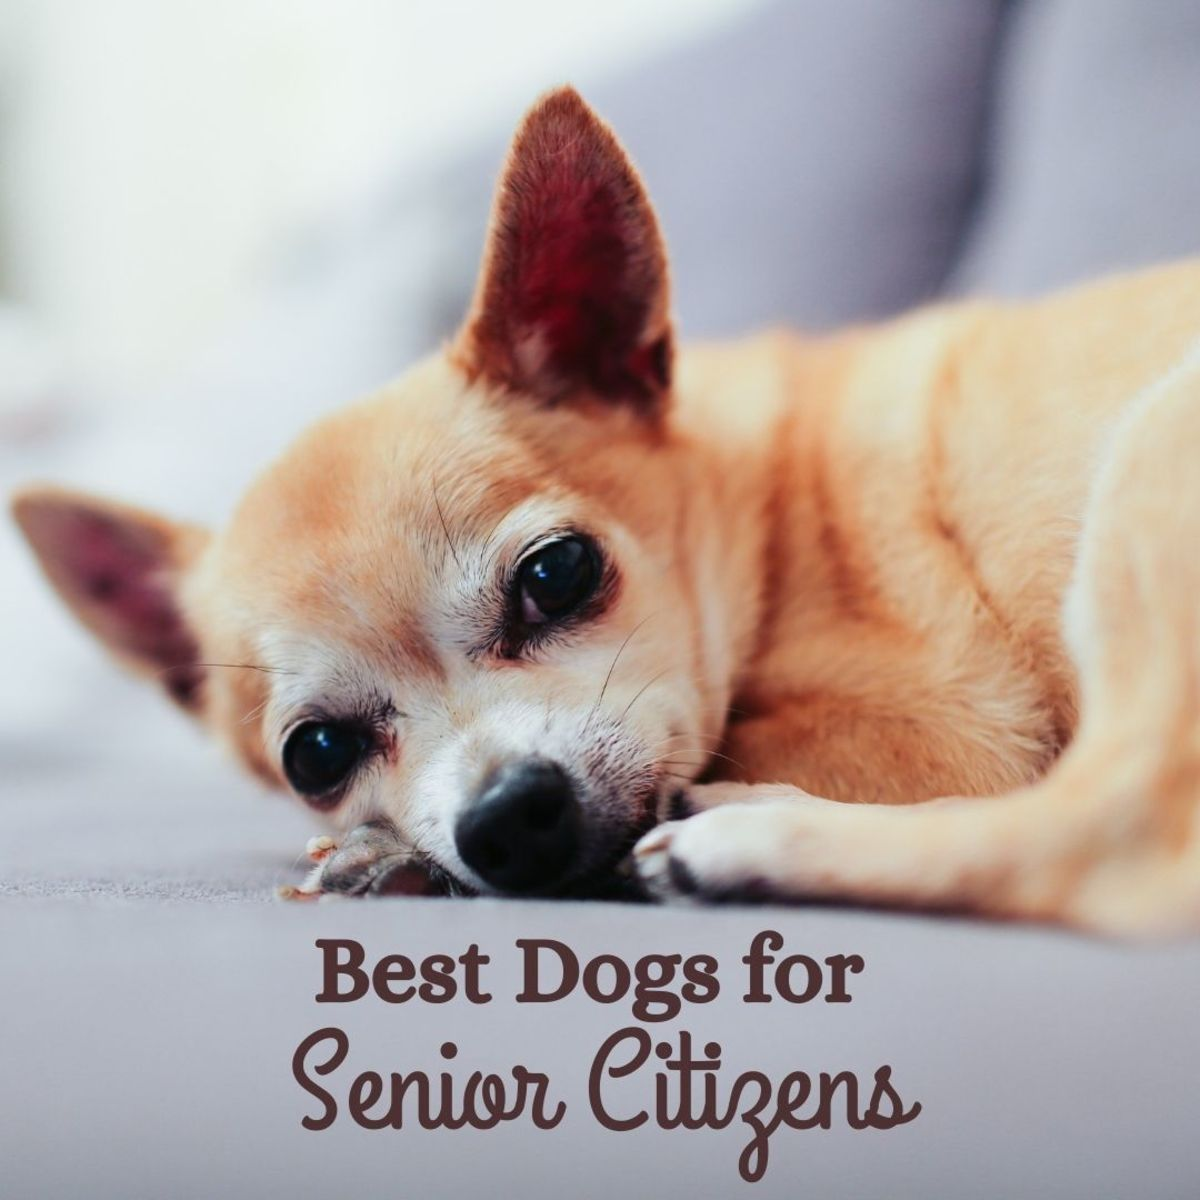 The Five Best Dog Breeds for Senior Citizens